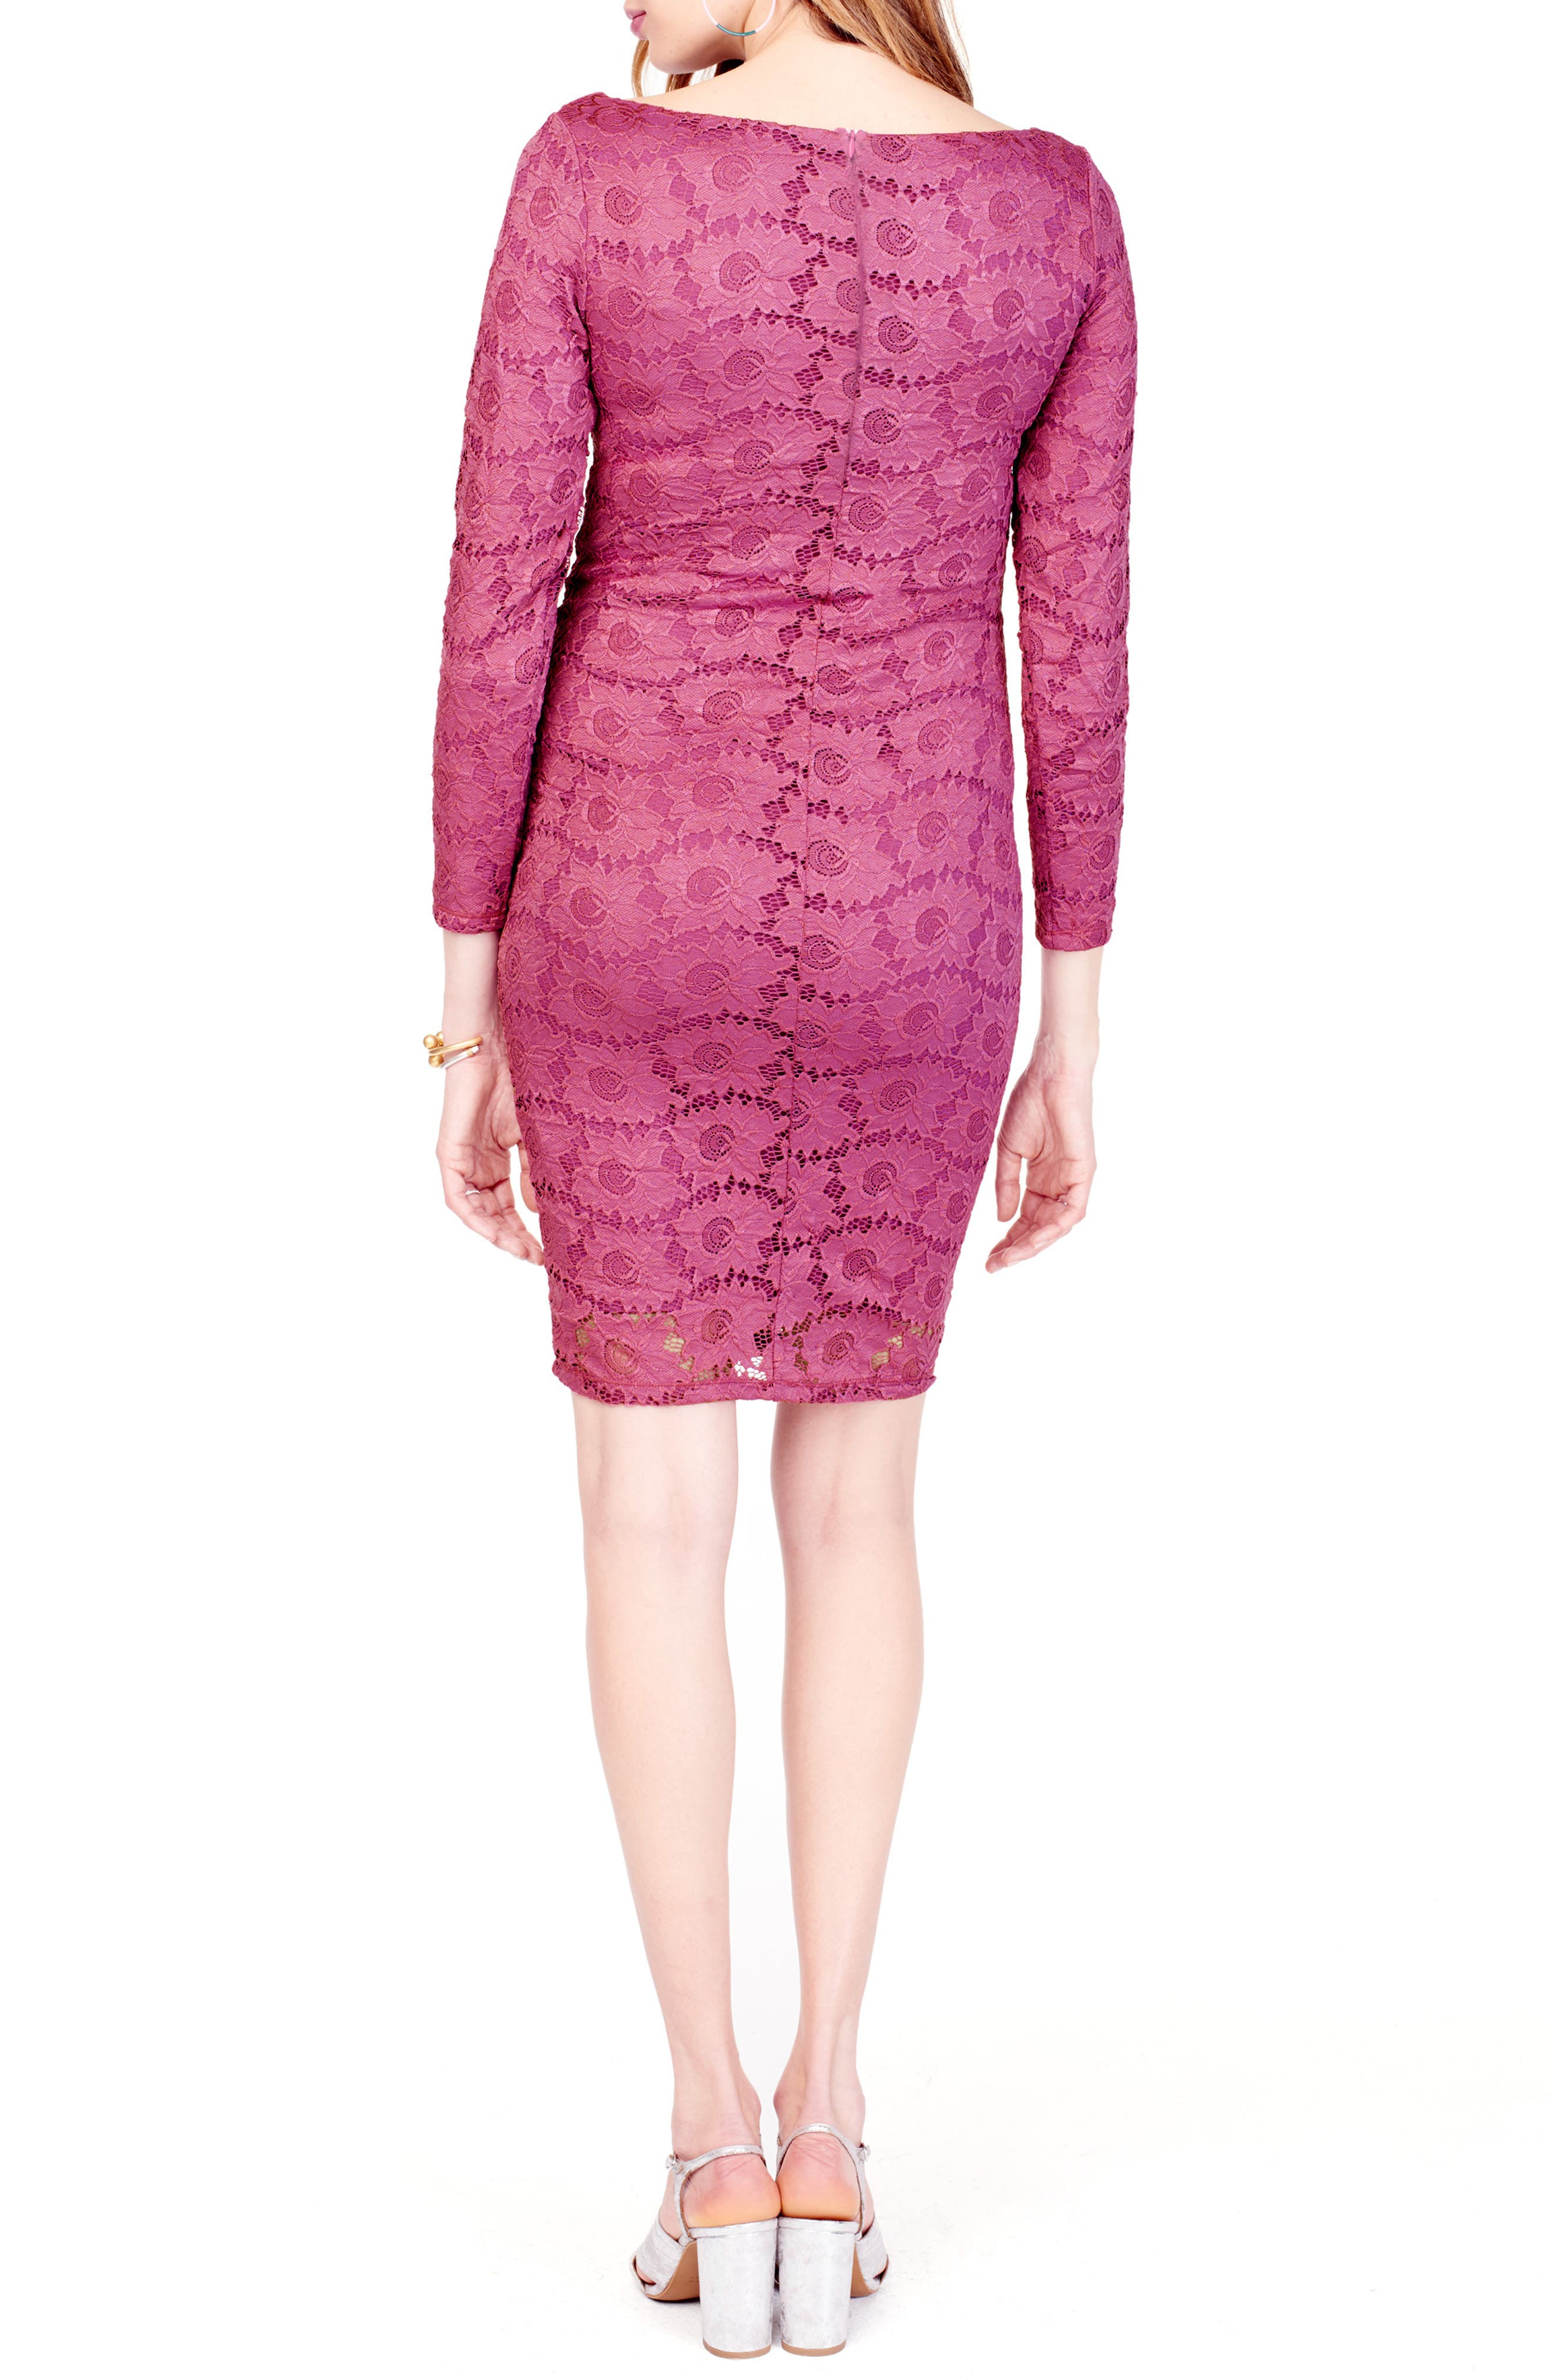 Ingrid & Isabel Floral Lace Body-Con Maternity Dress, Pink